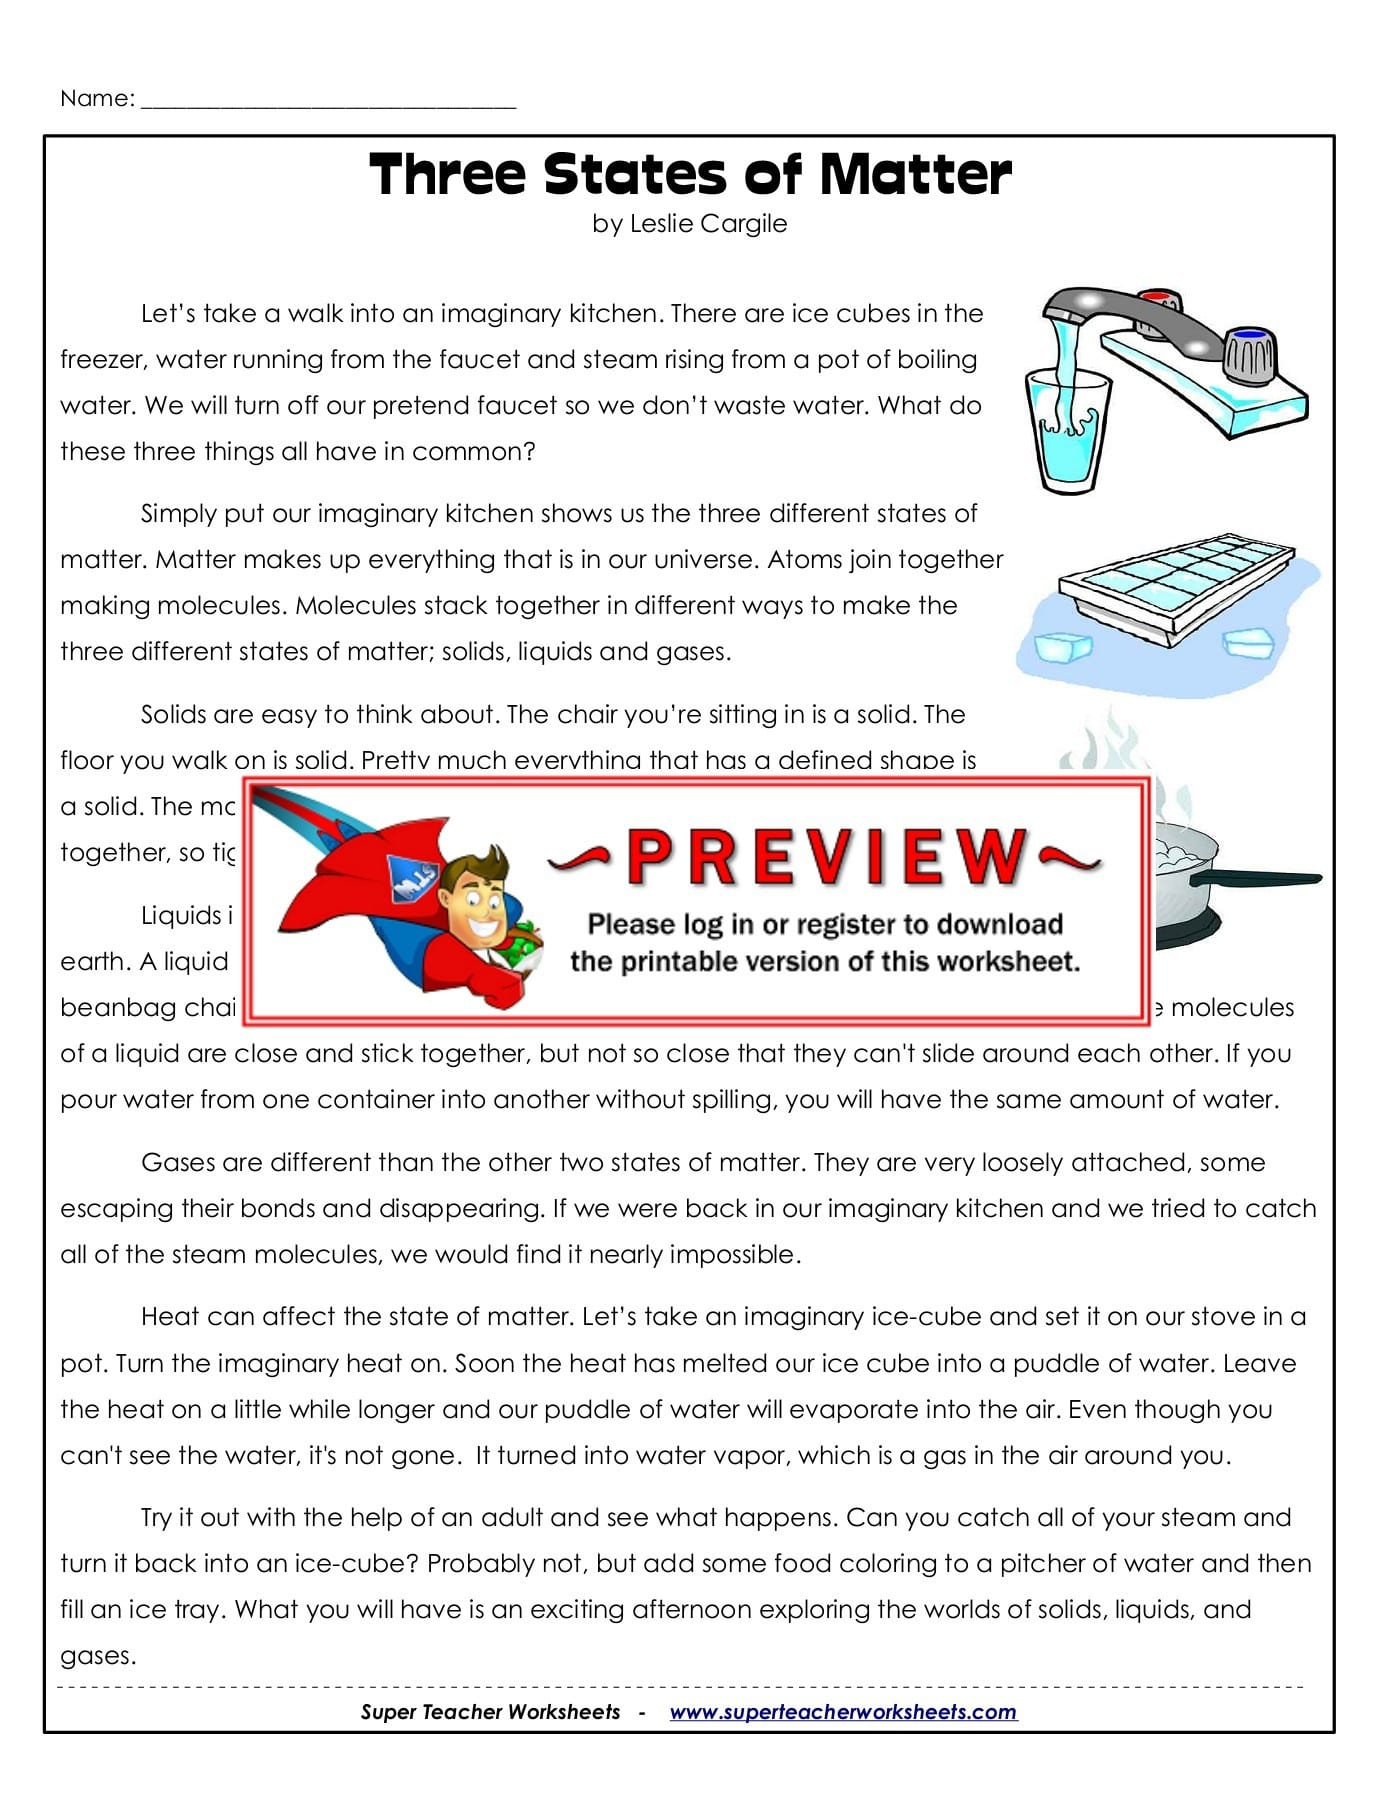 Name Three States Of Matter Super Teacher Worksheets